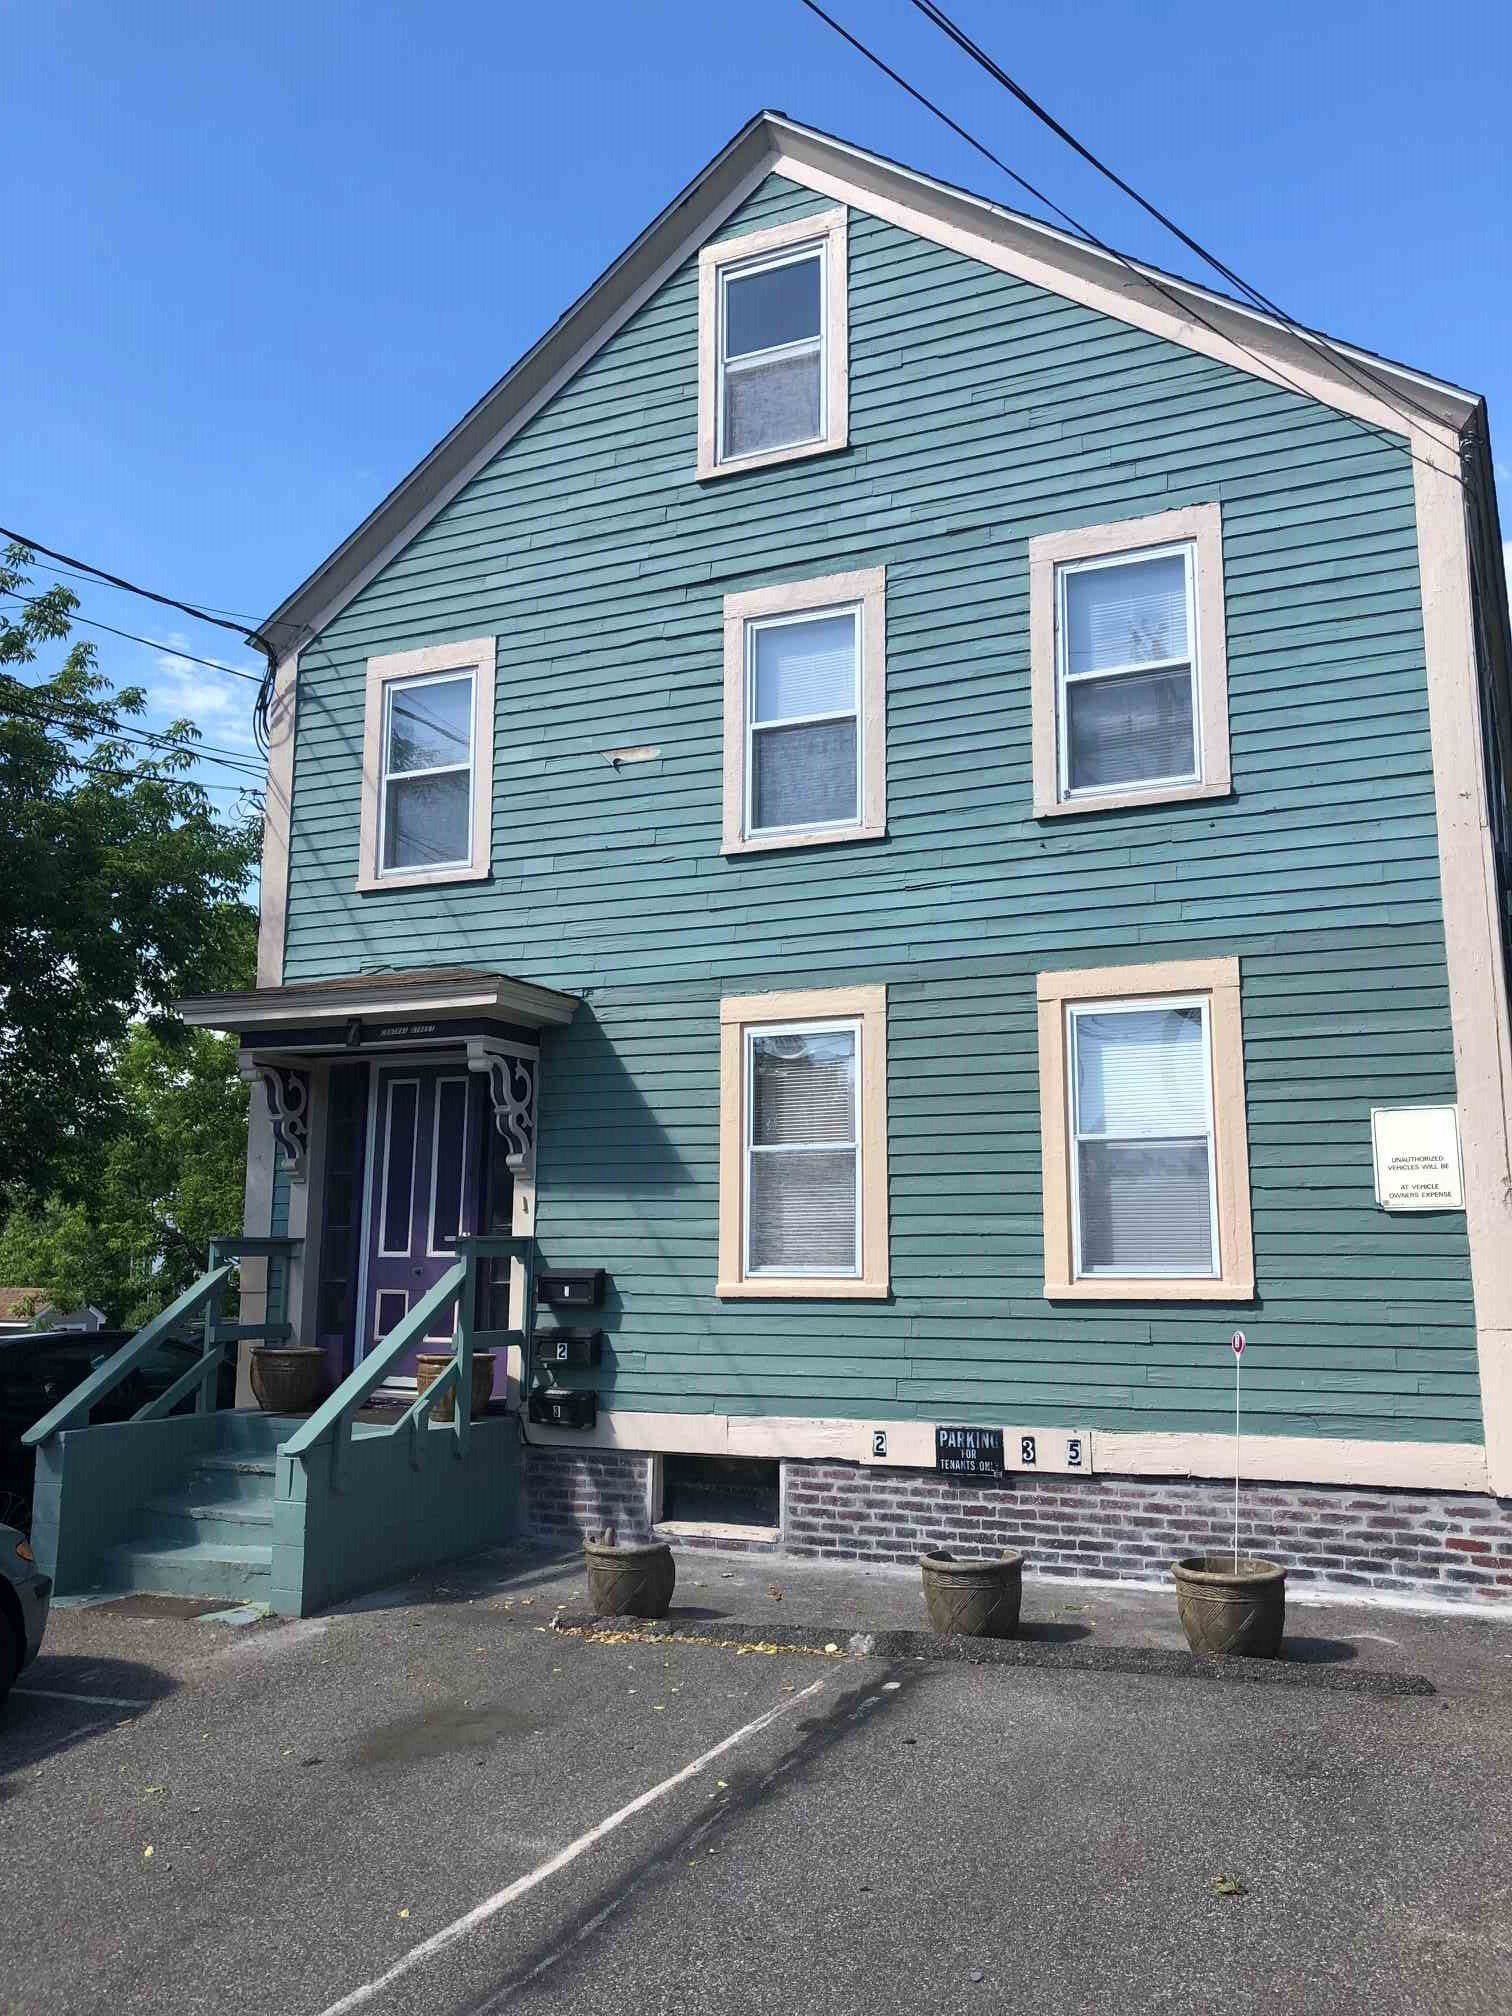 MLS 4816038: 7 Central Street, Derry NH